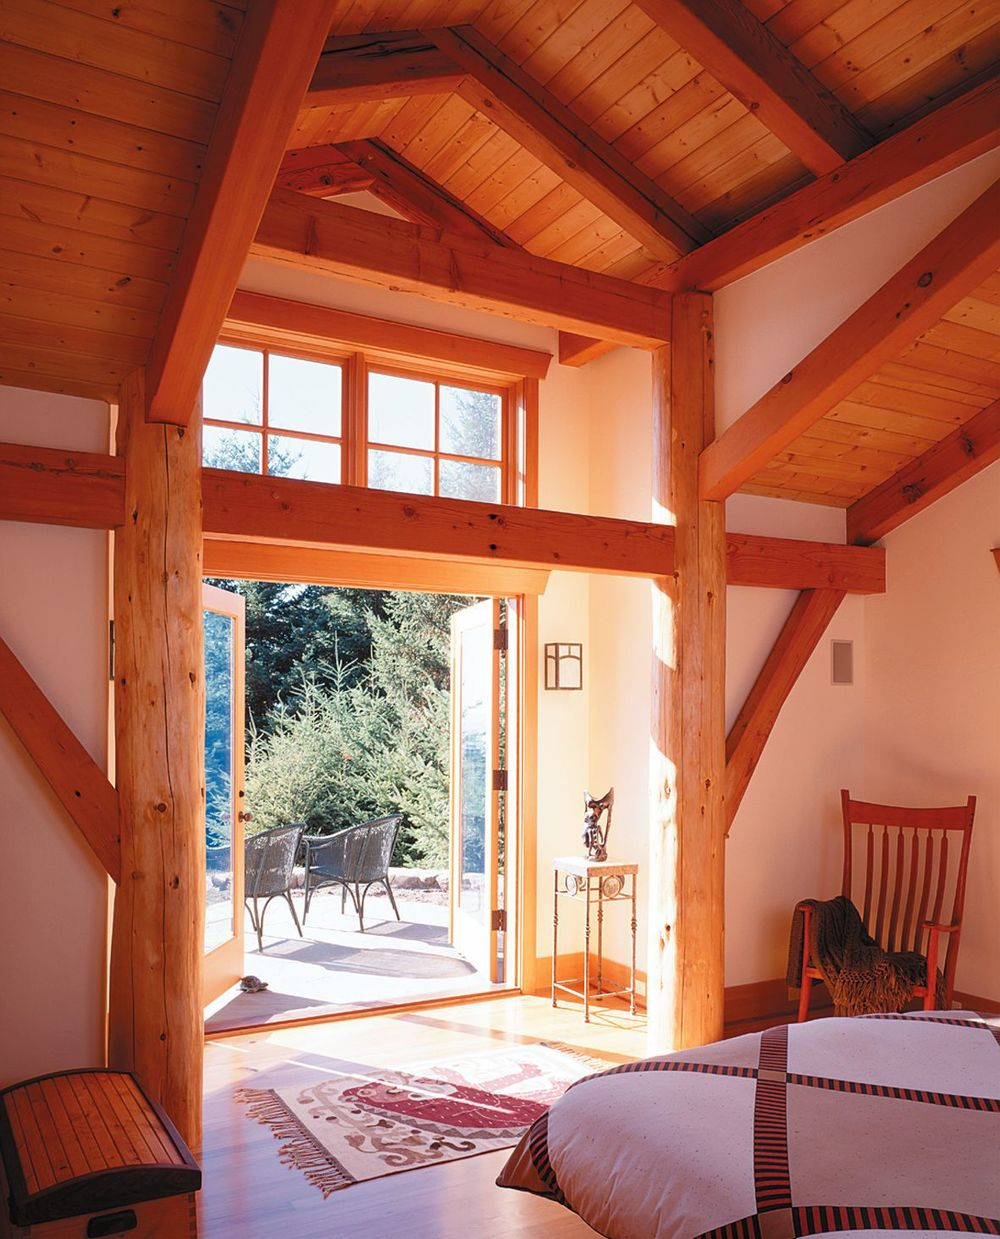 San Juan Island Timber Frame Home - Interior